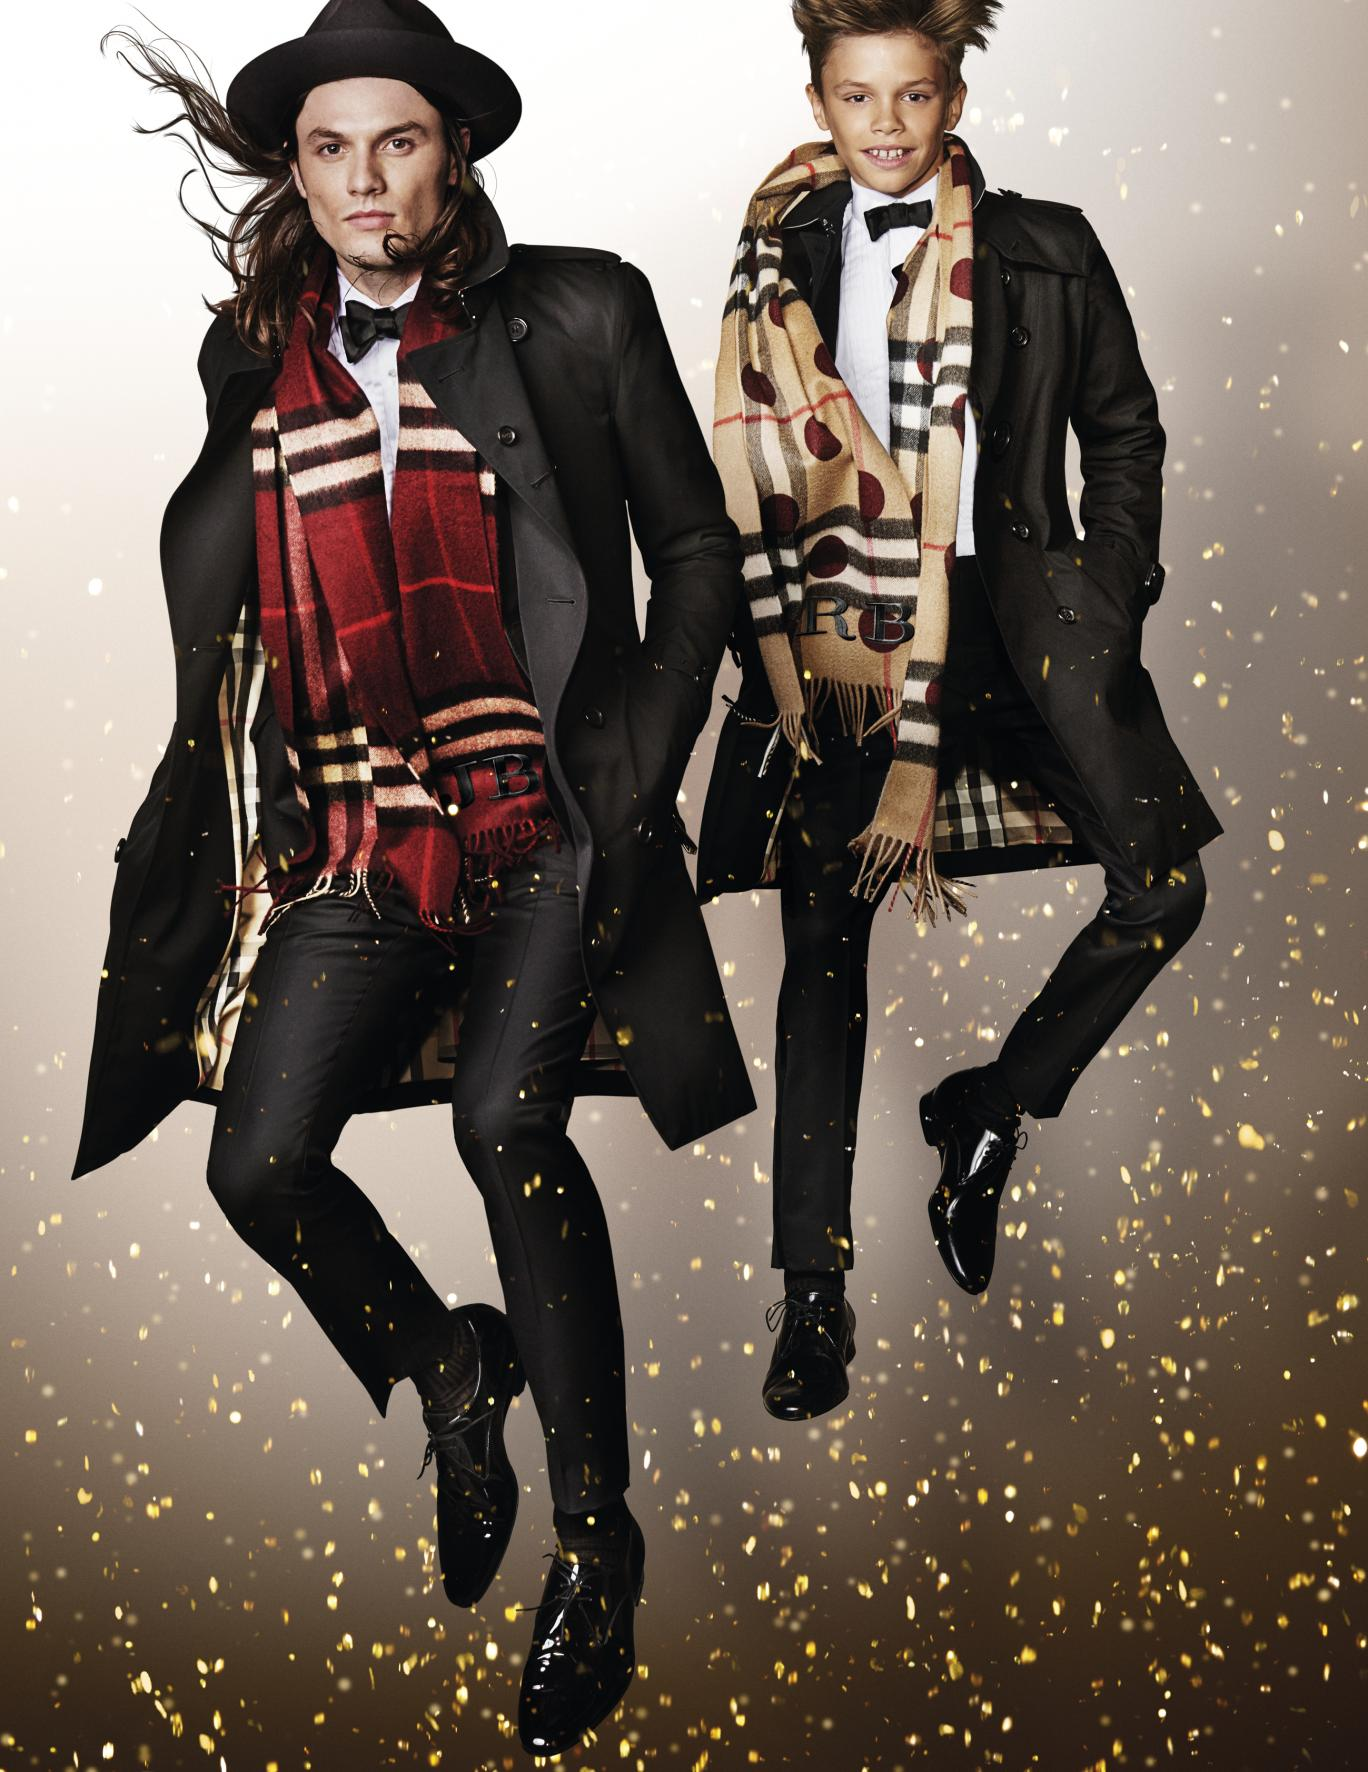 james_bay_and_romeo_beckham_in_the_burberry_festive_campaign_shot_by_mario_testino_0.jpg